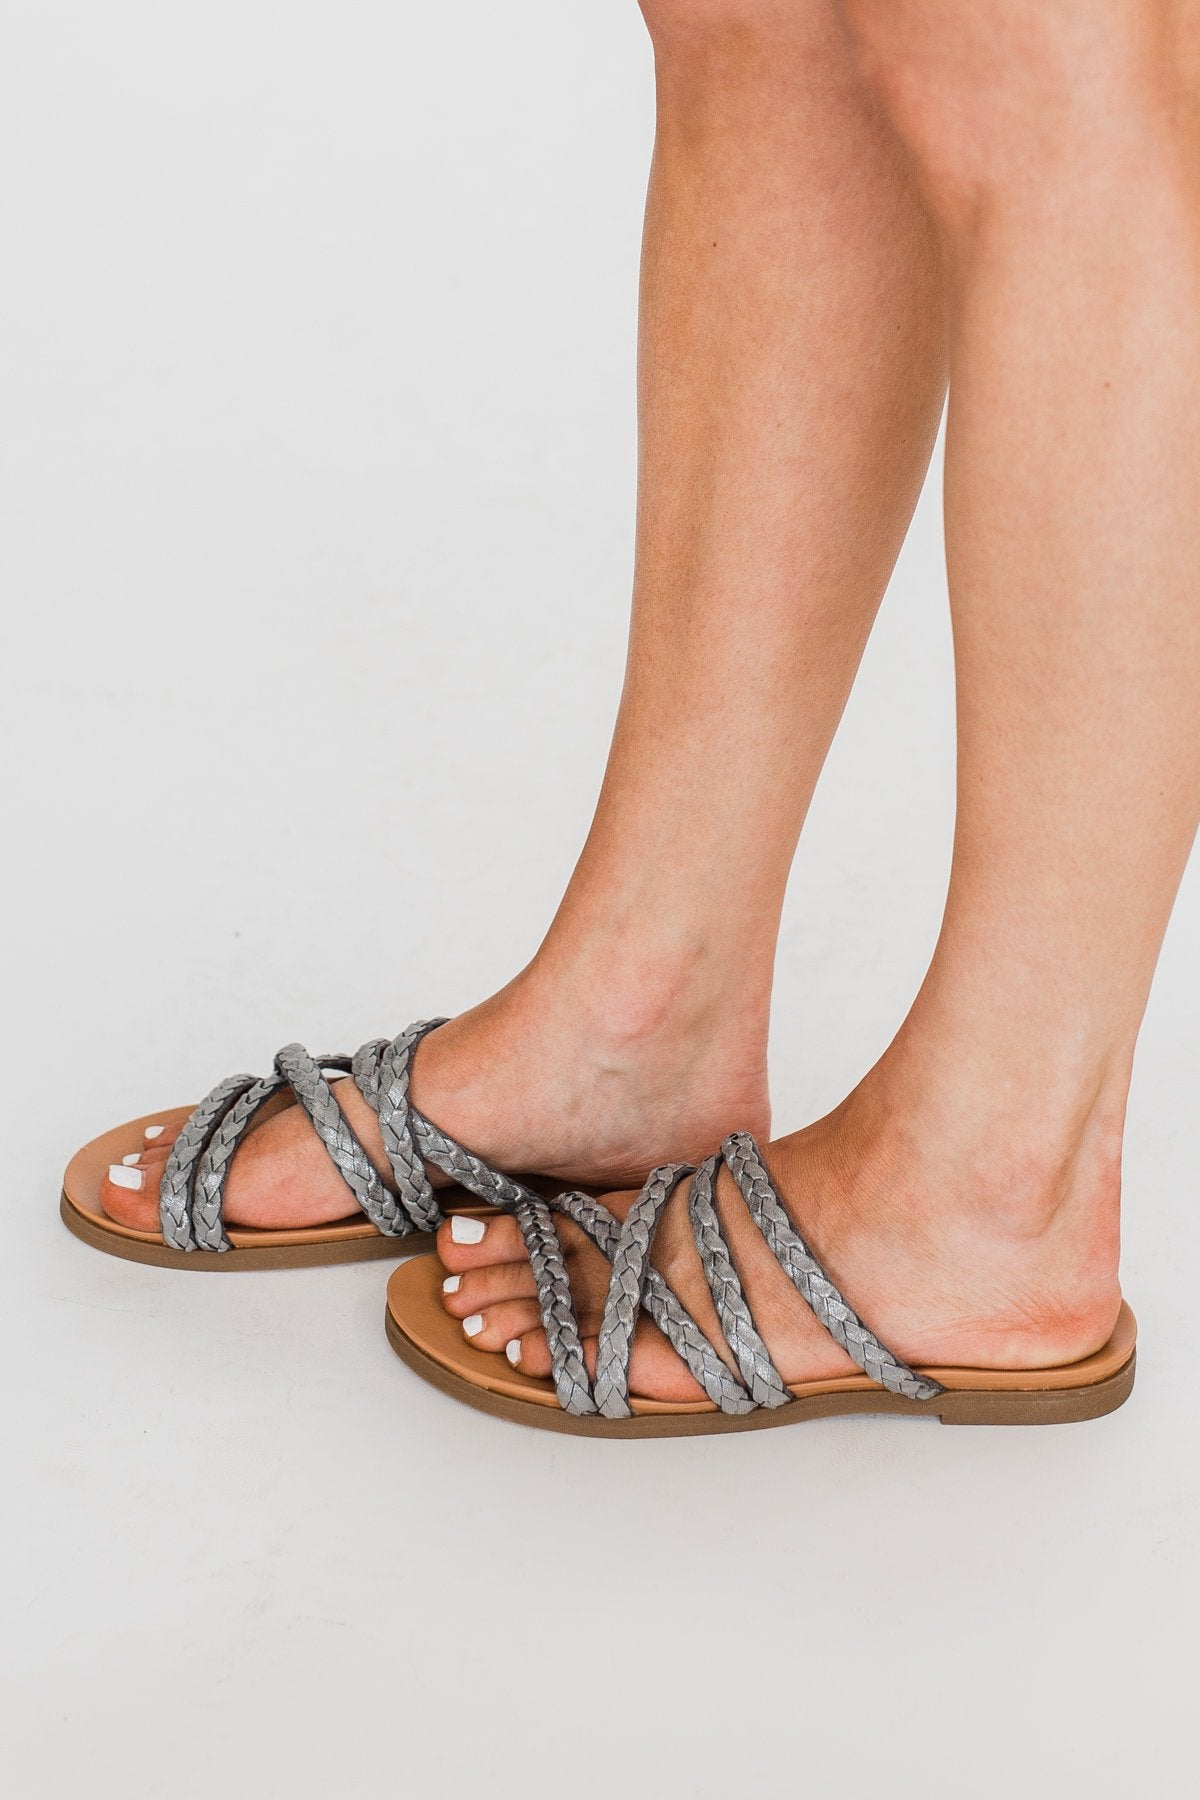 Not Rated Elion Sandals- Silver